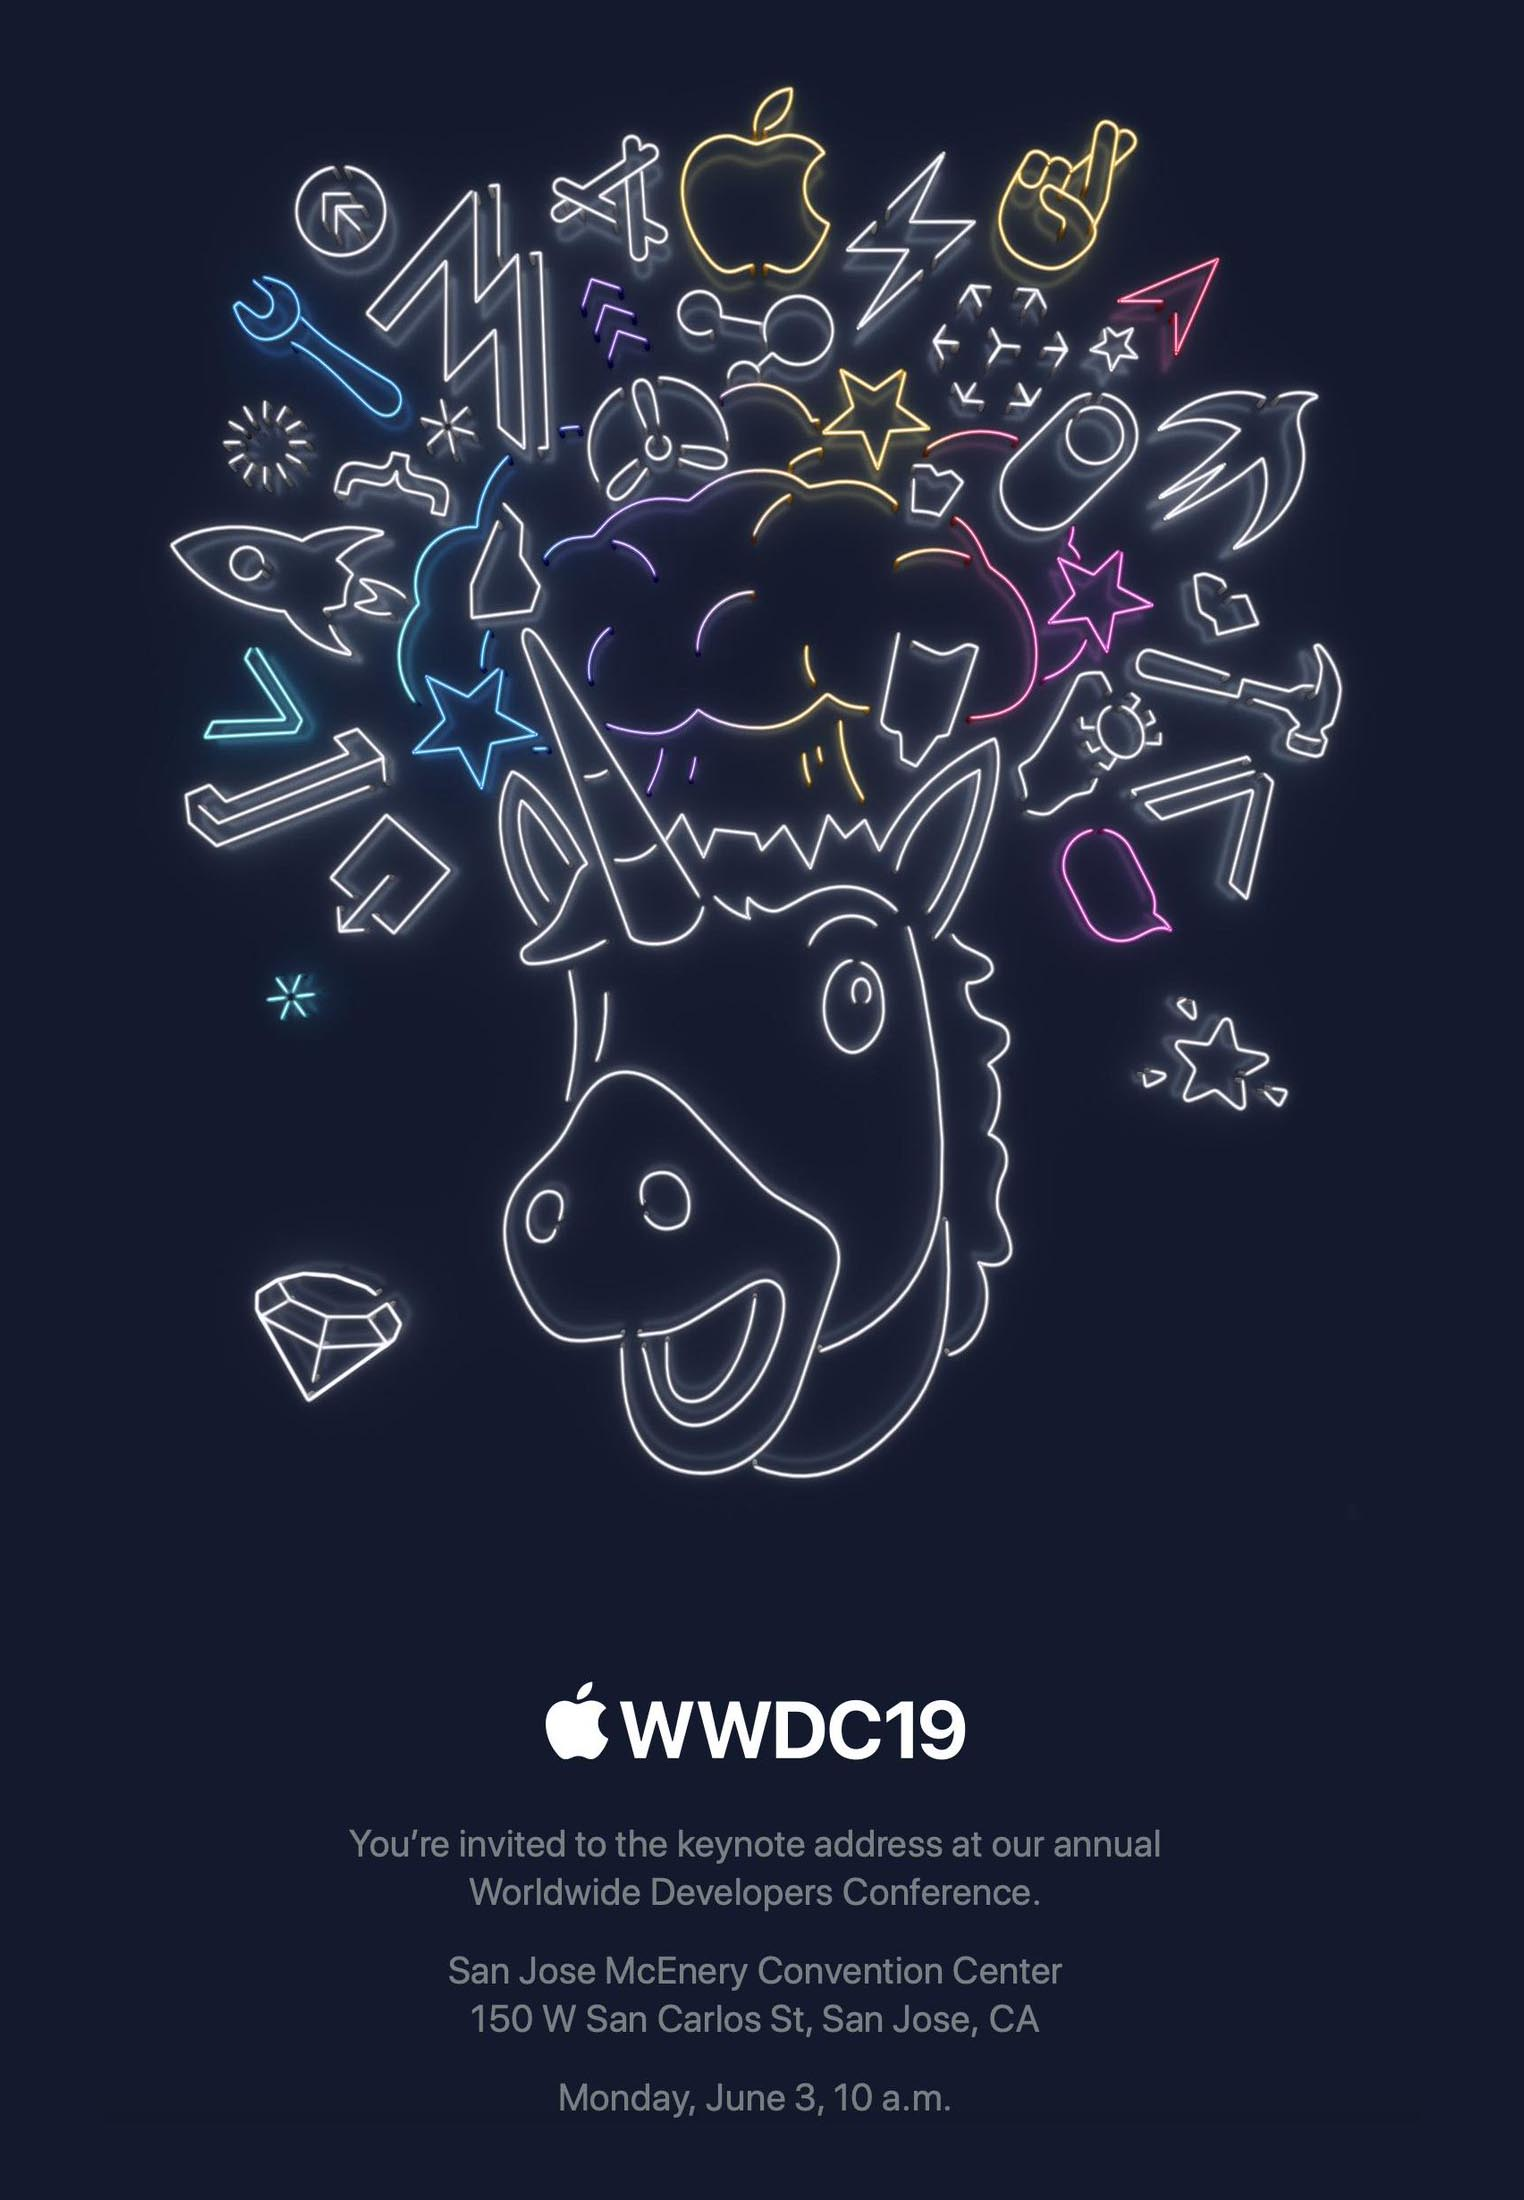 WWDC 2019 keynote invitation